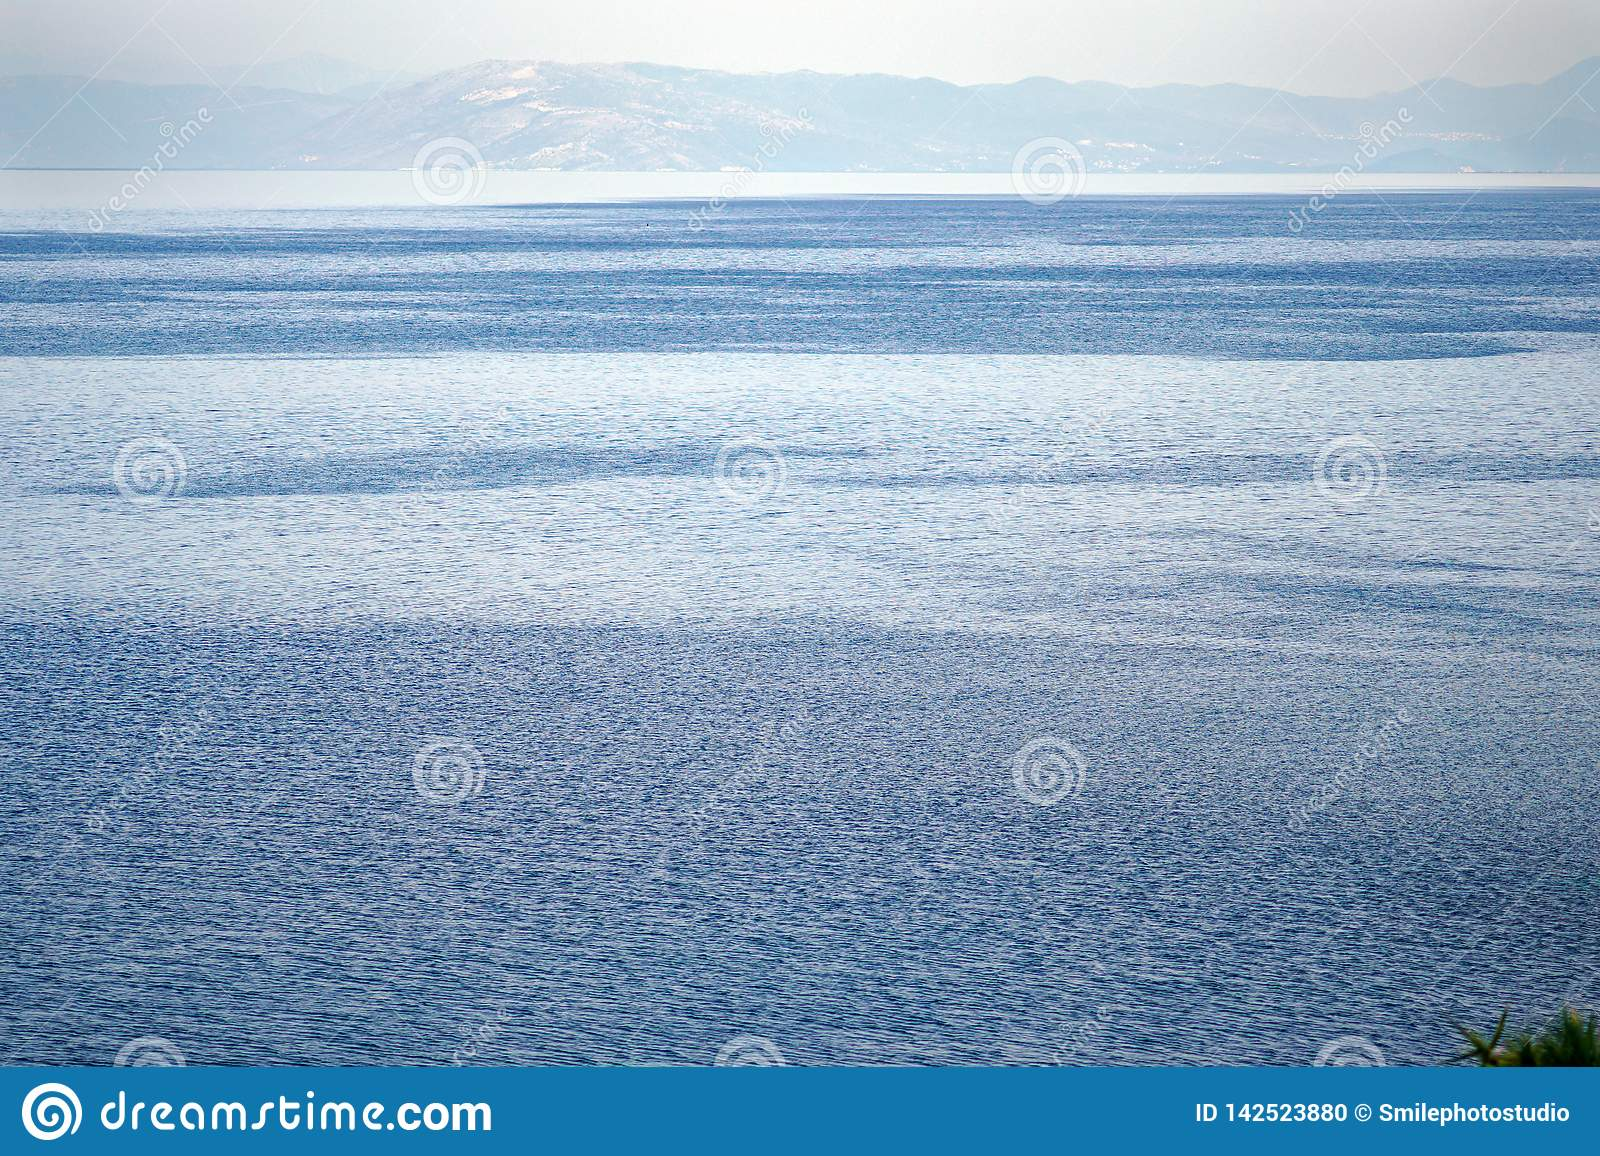 View of the inland sea of Corfu with the coasts of Albania as a background